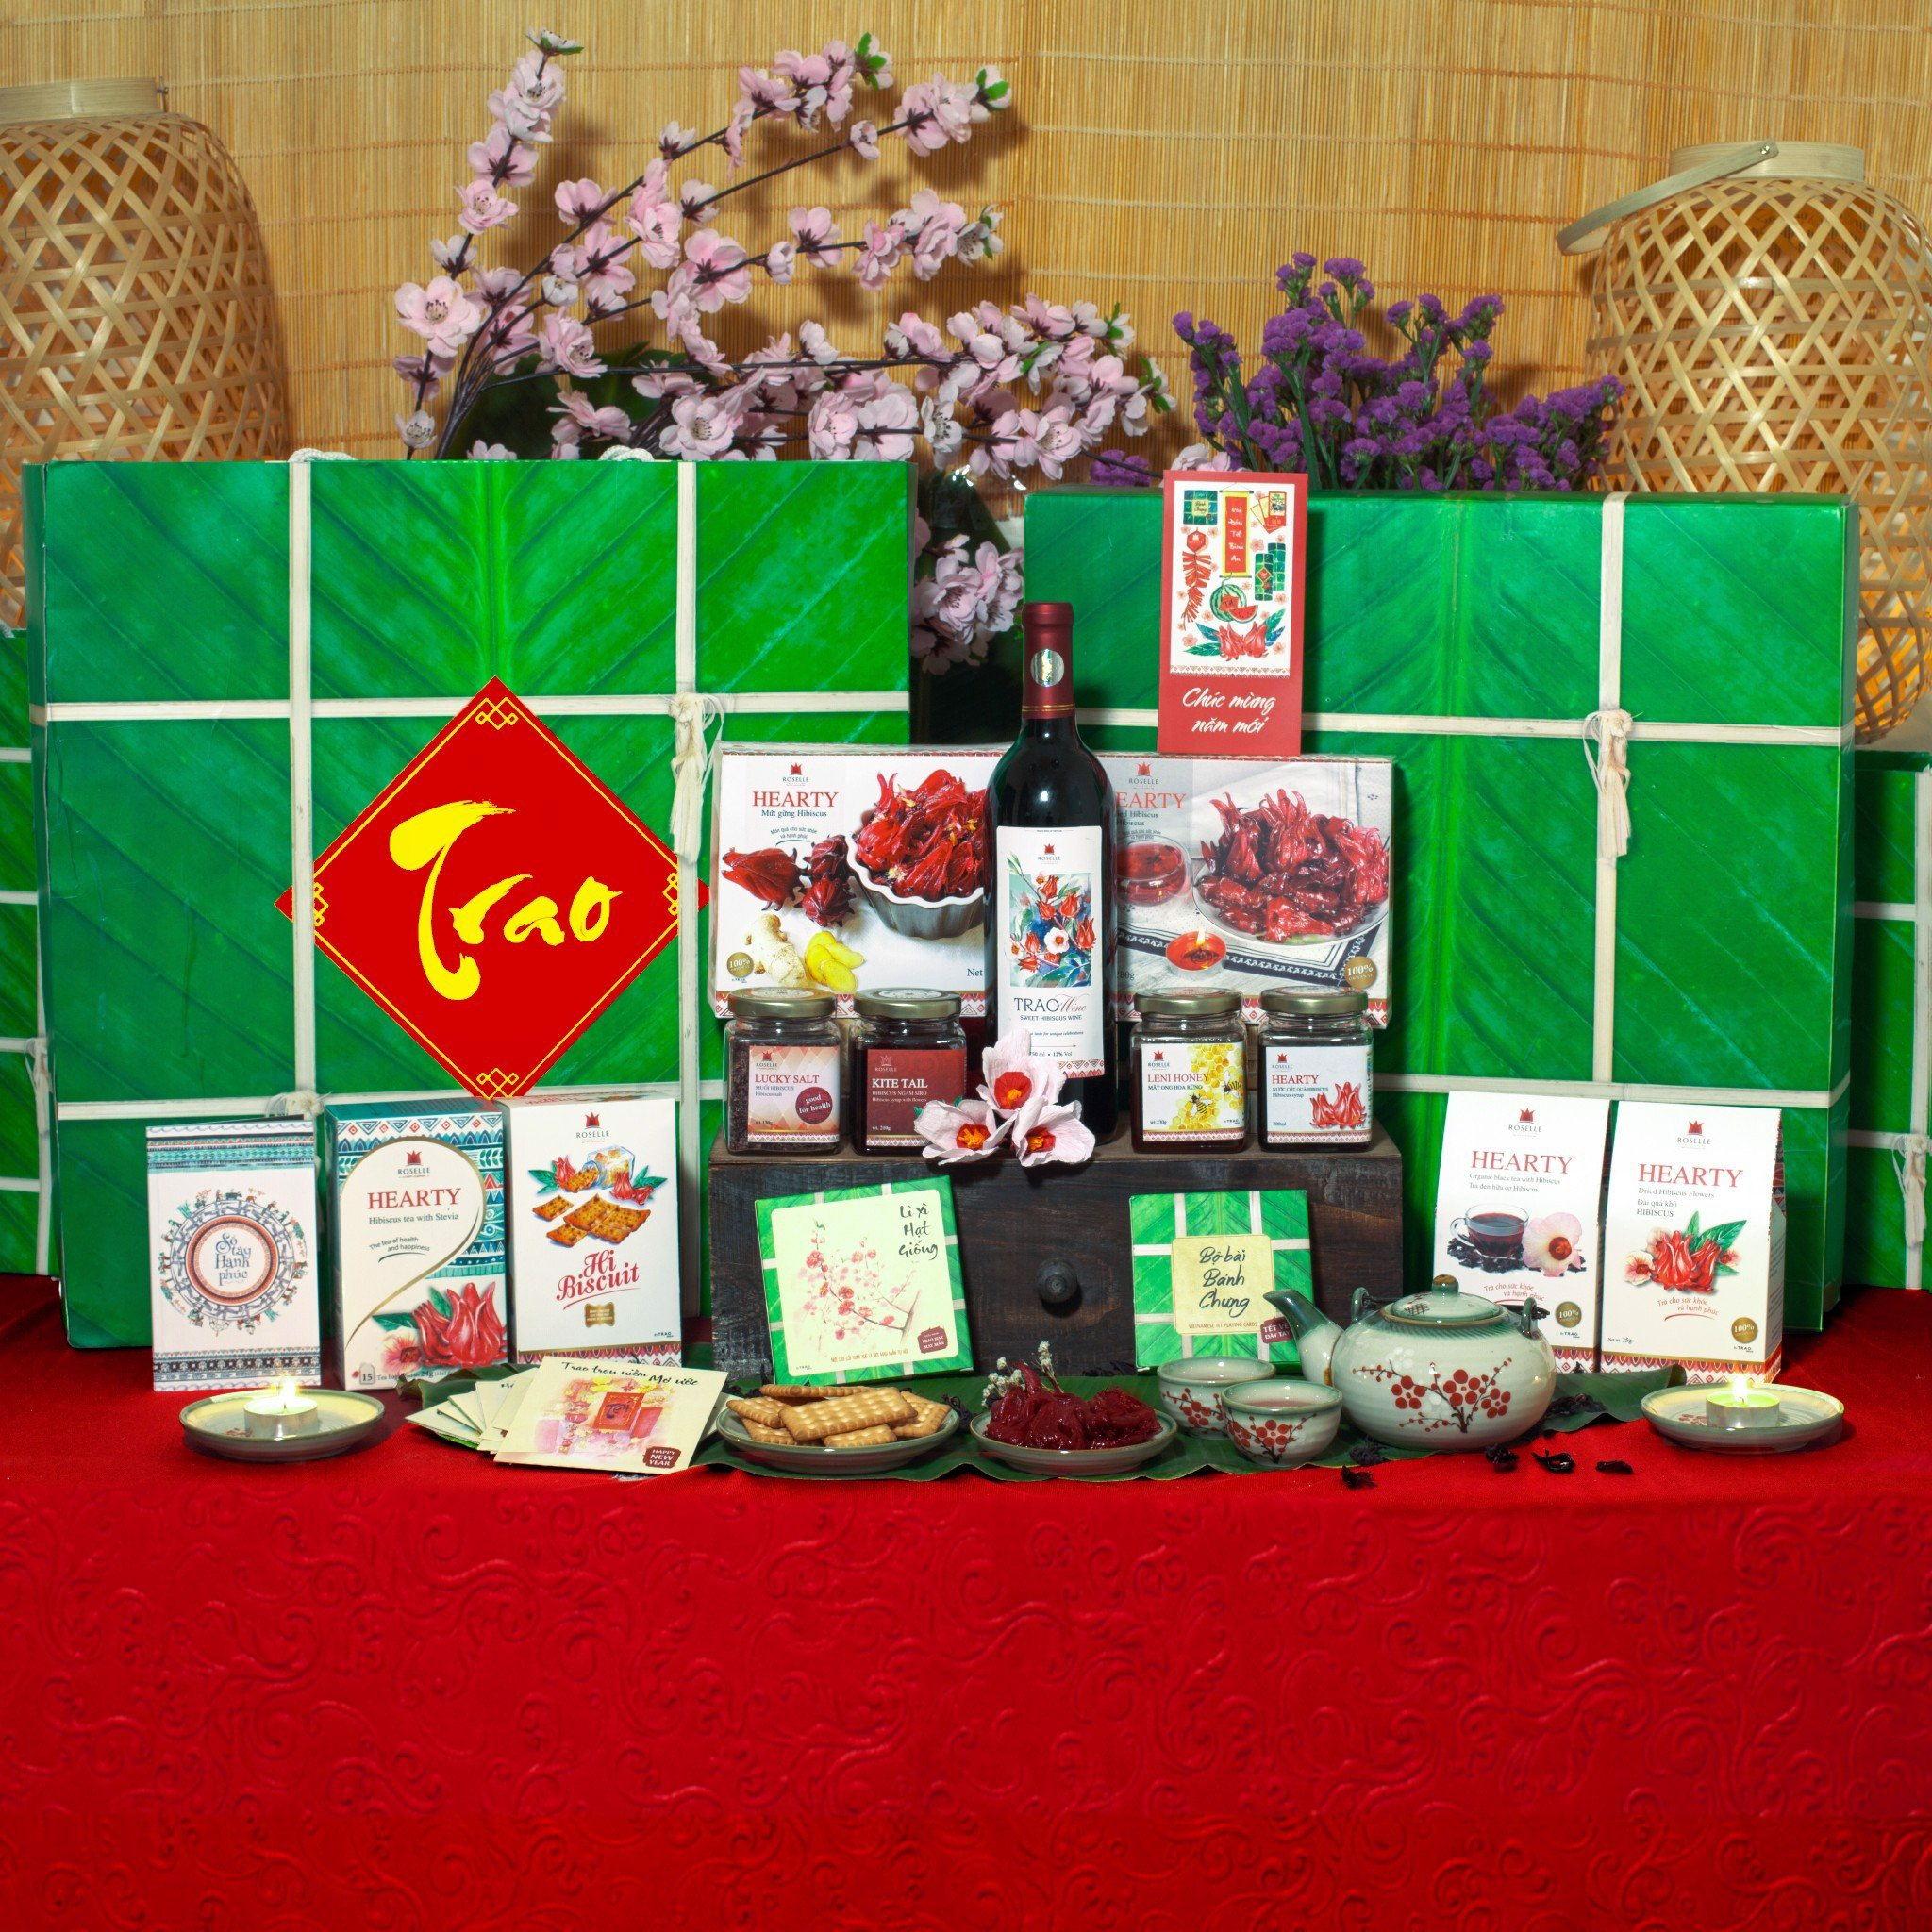 THE GIANT BANH CHUNG GIFTSET